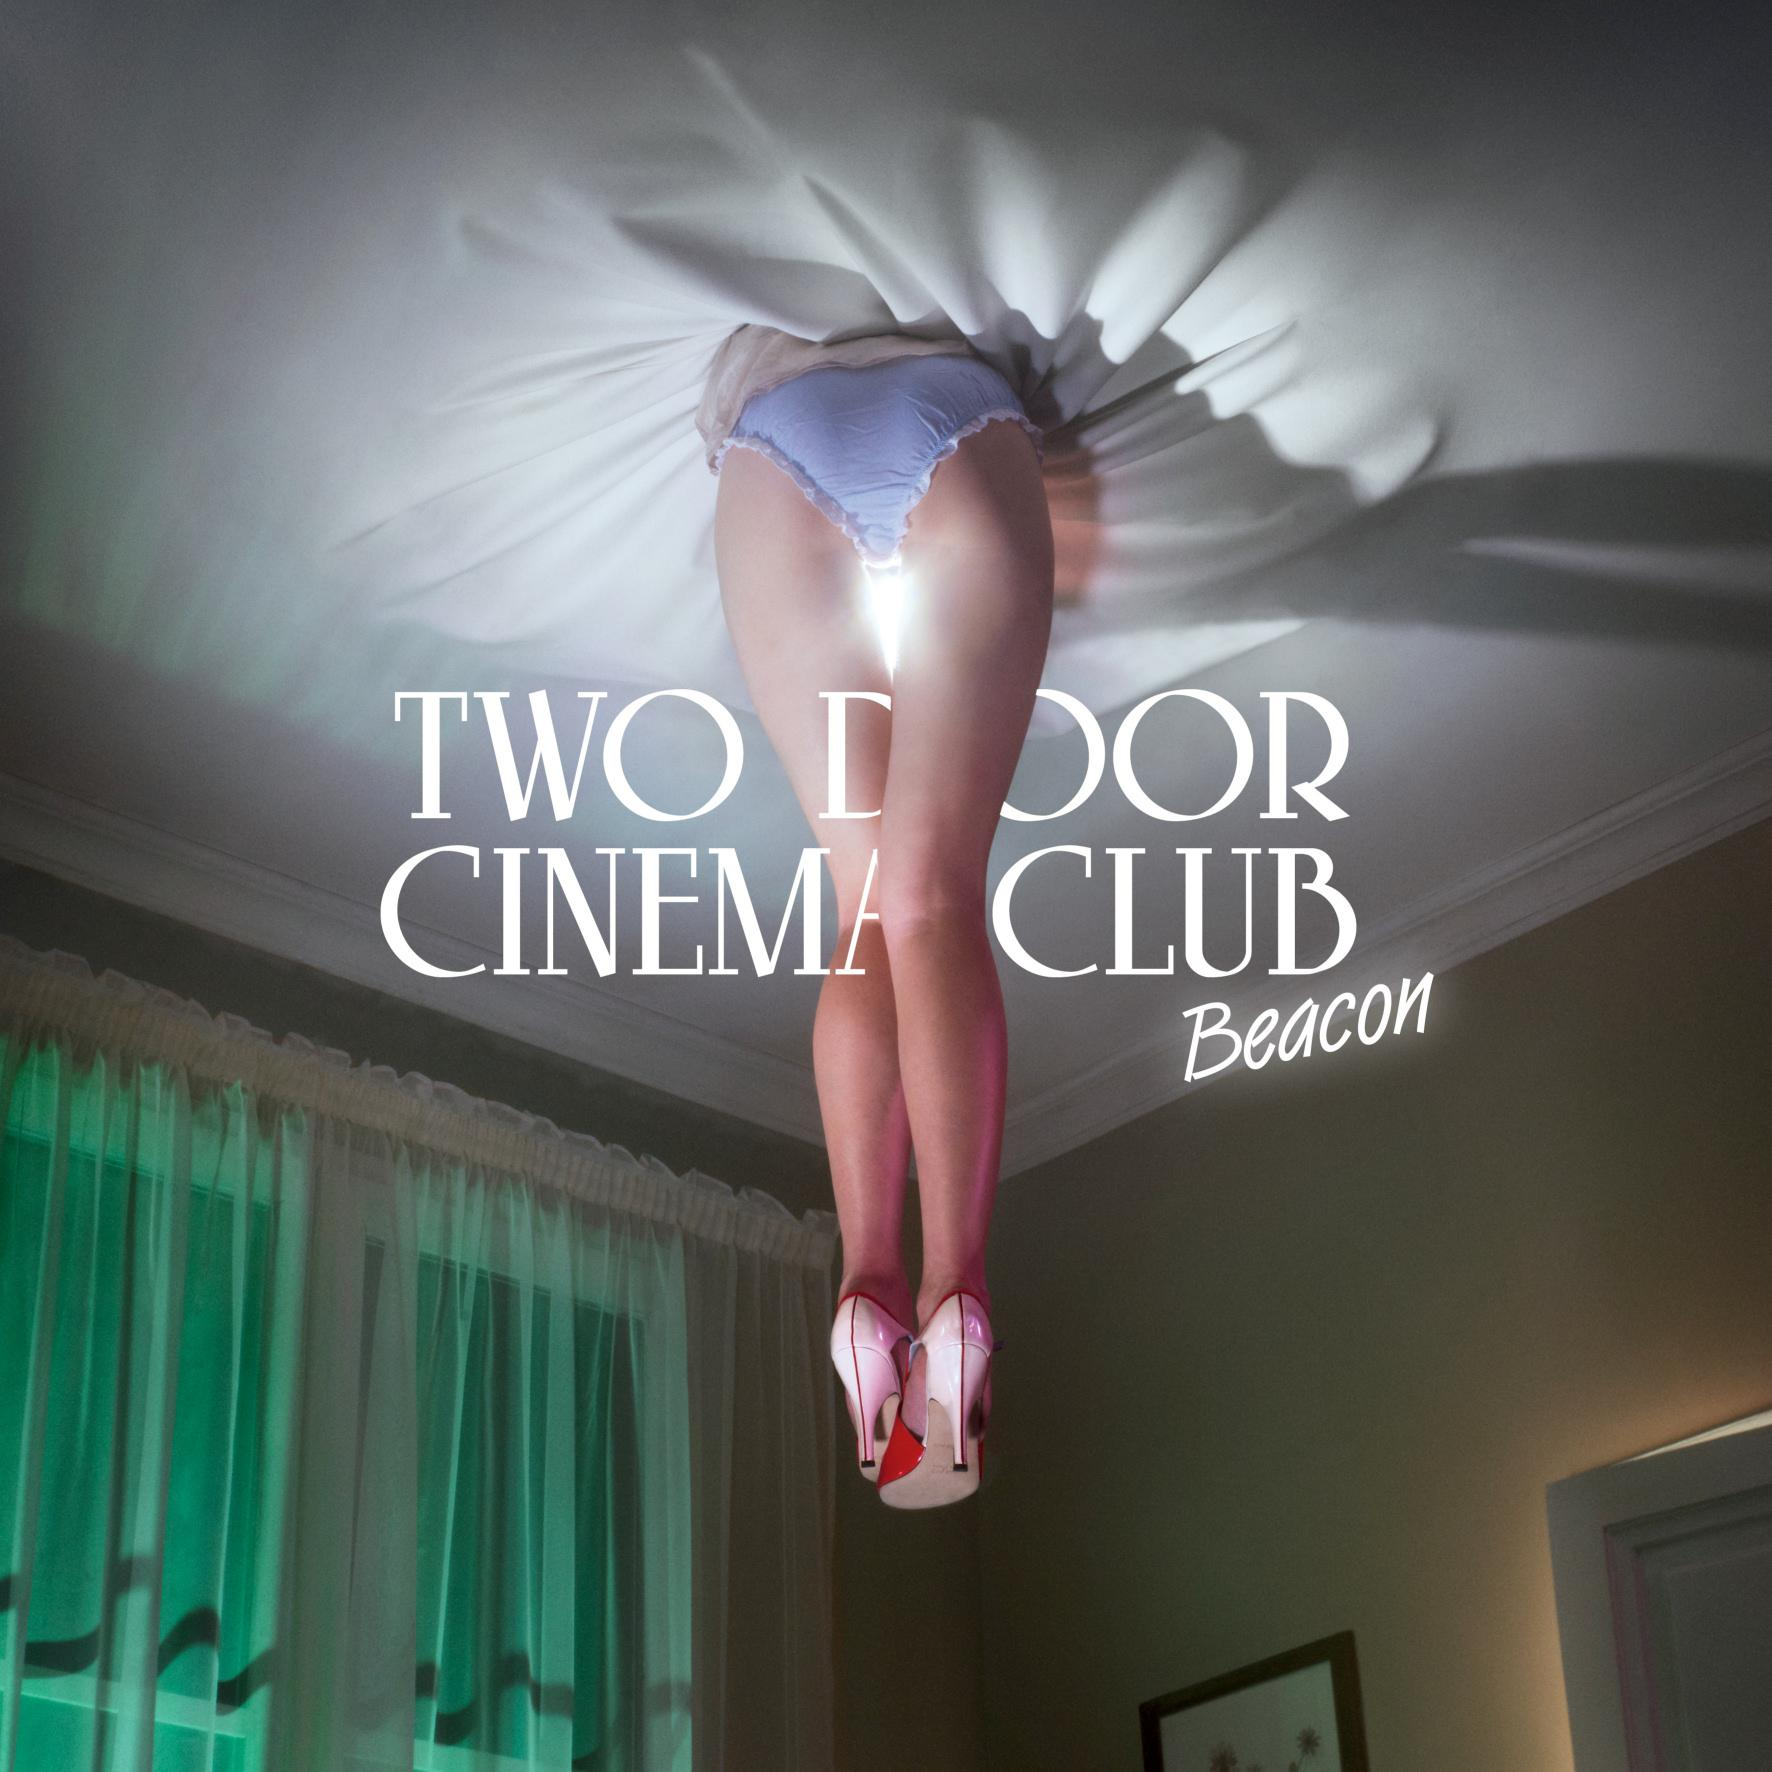 Two Door Cinema Club - Beacon [MULTI]